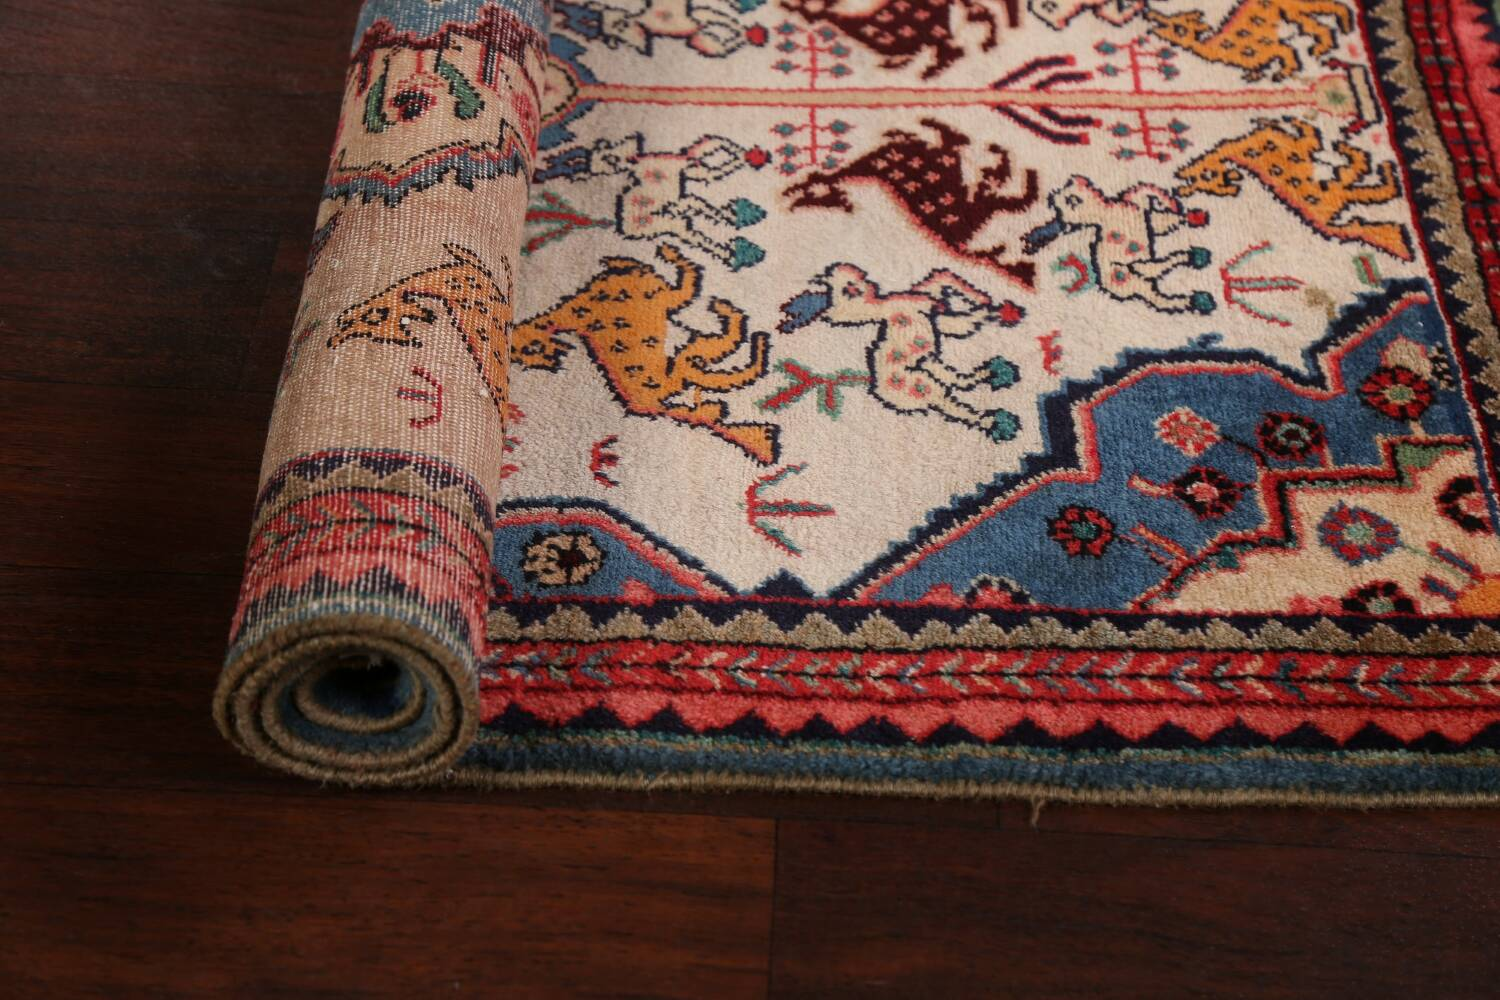 Animal Pictorial Vegetable Dye Senneh Persian Area Rug 3x5 image 15